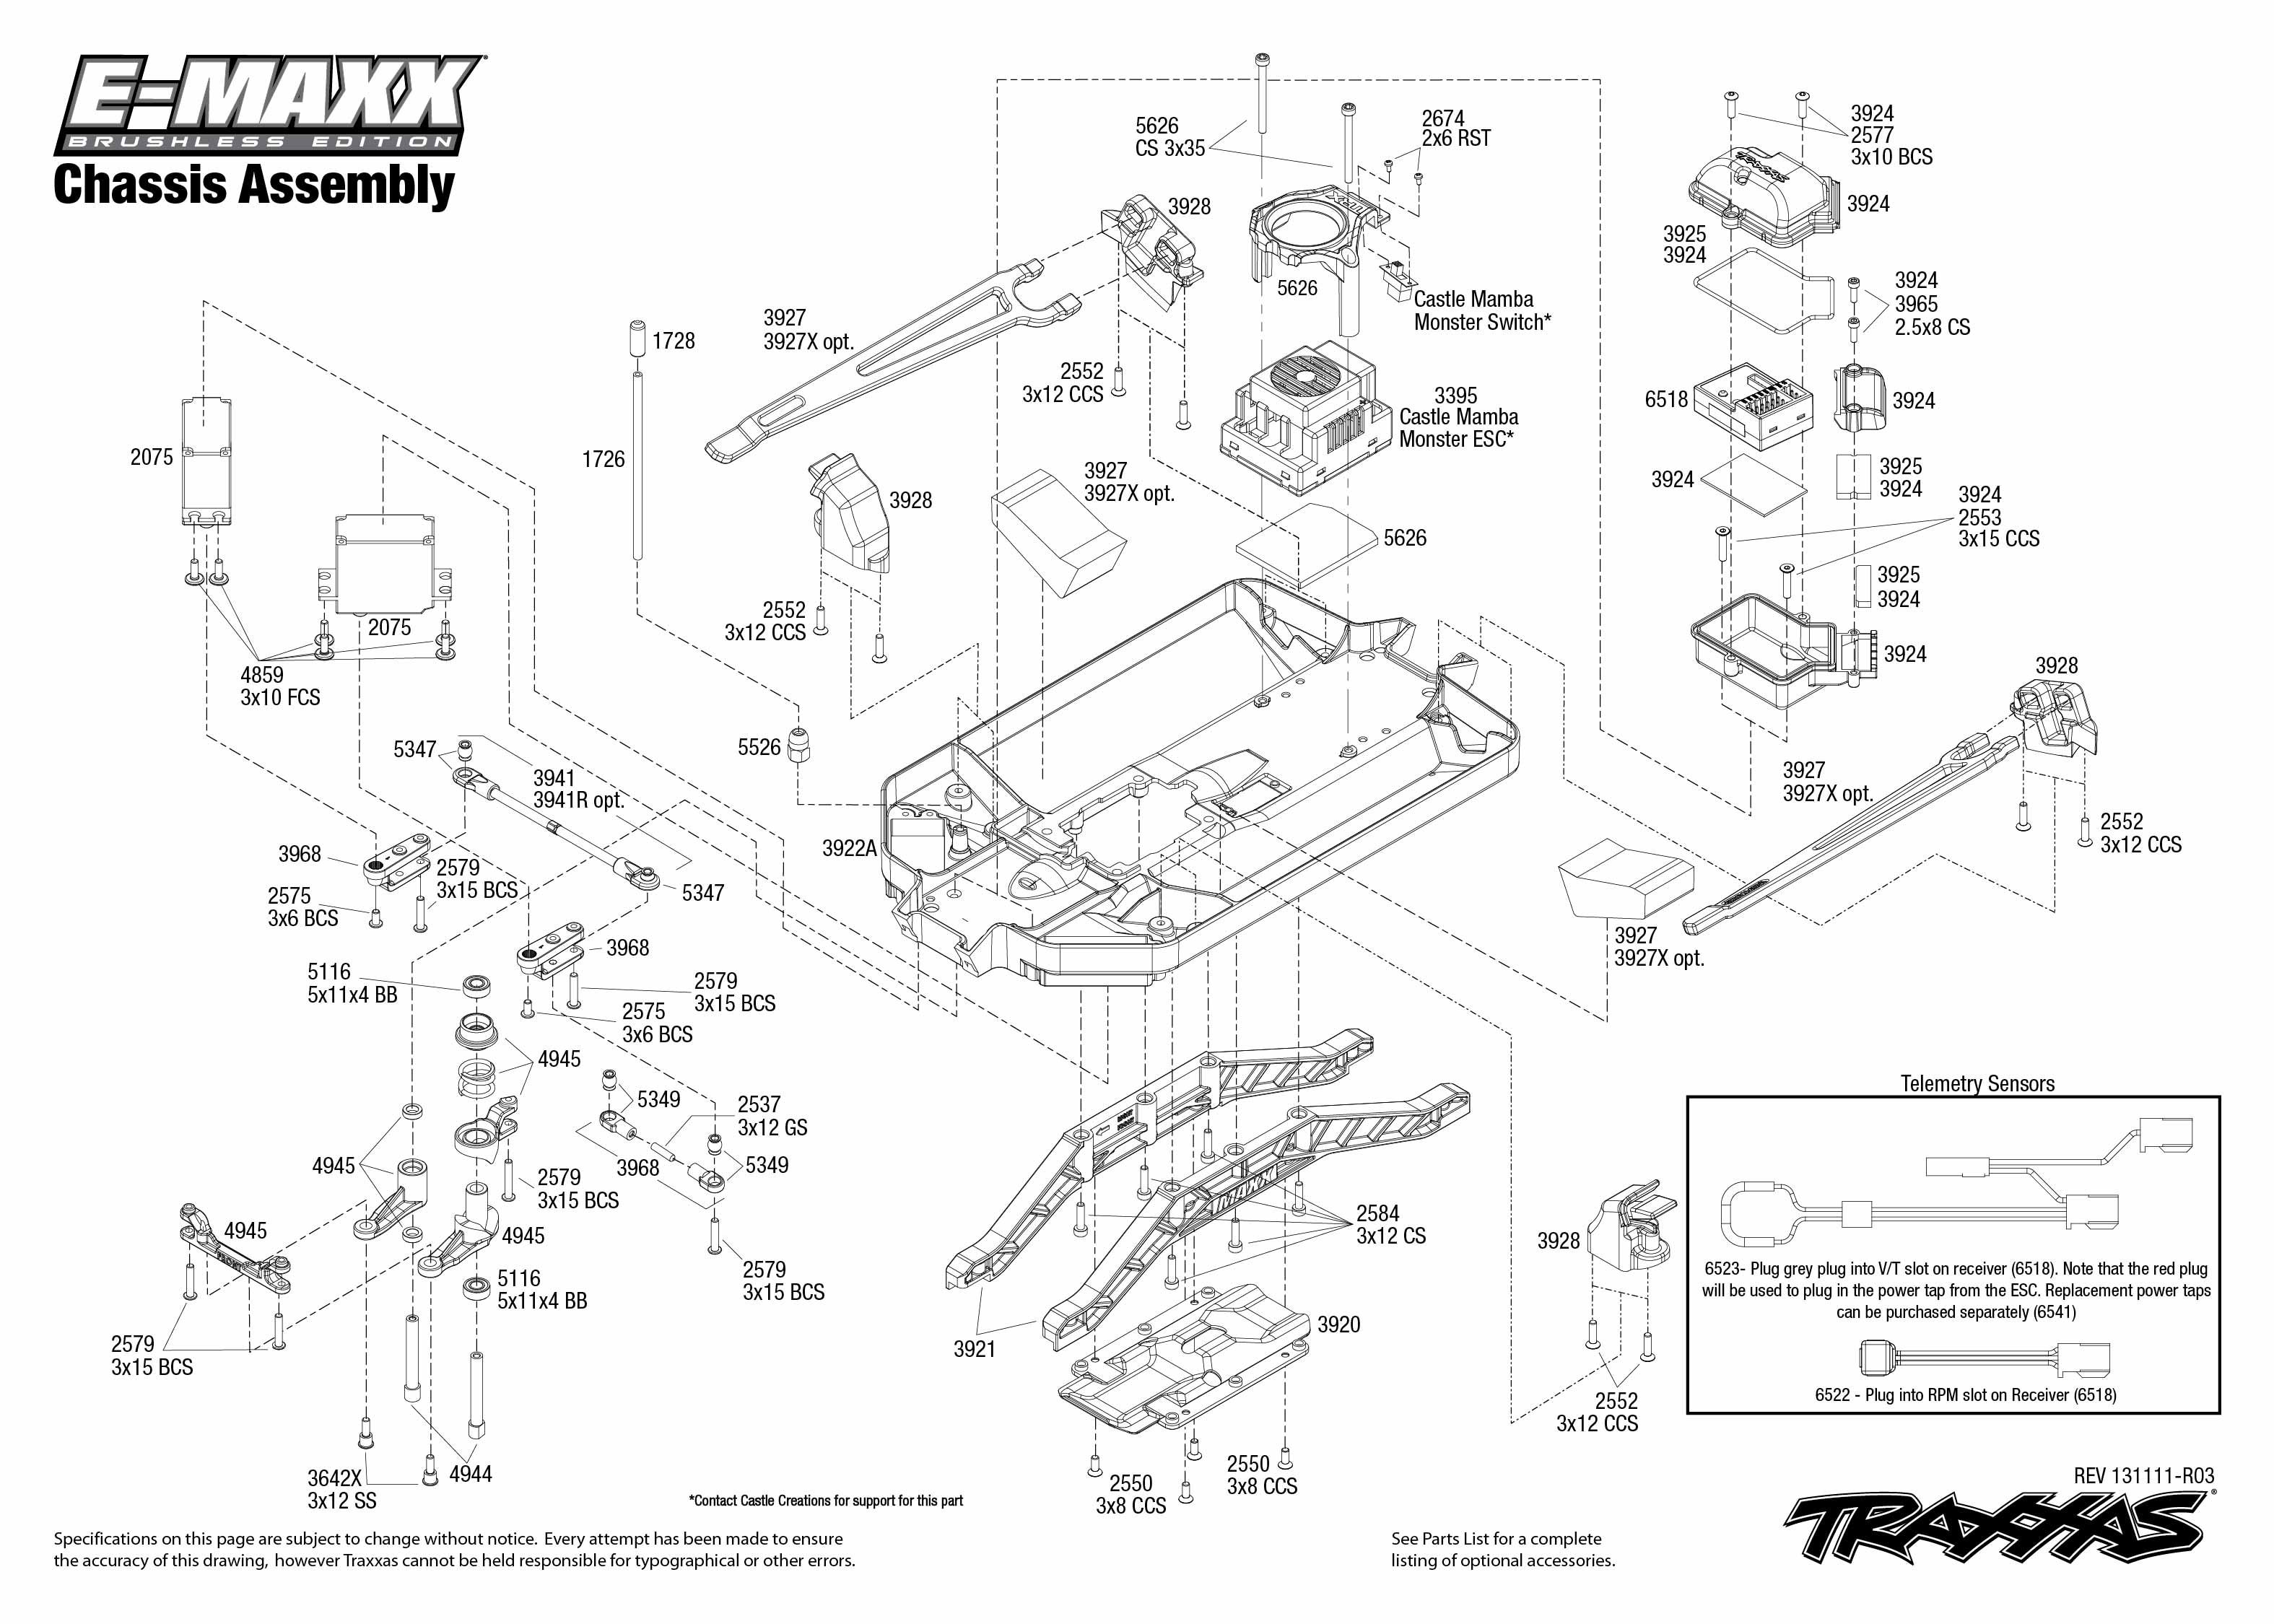 Traxxas T Maxx 2 5 Transmission Diagram Vga To Av Cable Wiring Emaxx Parts Brushless 3908 Chassis